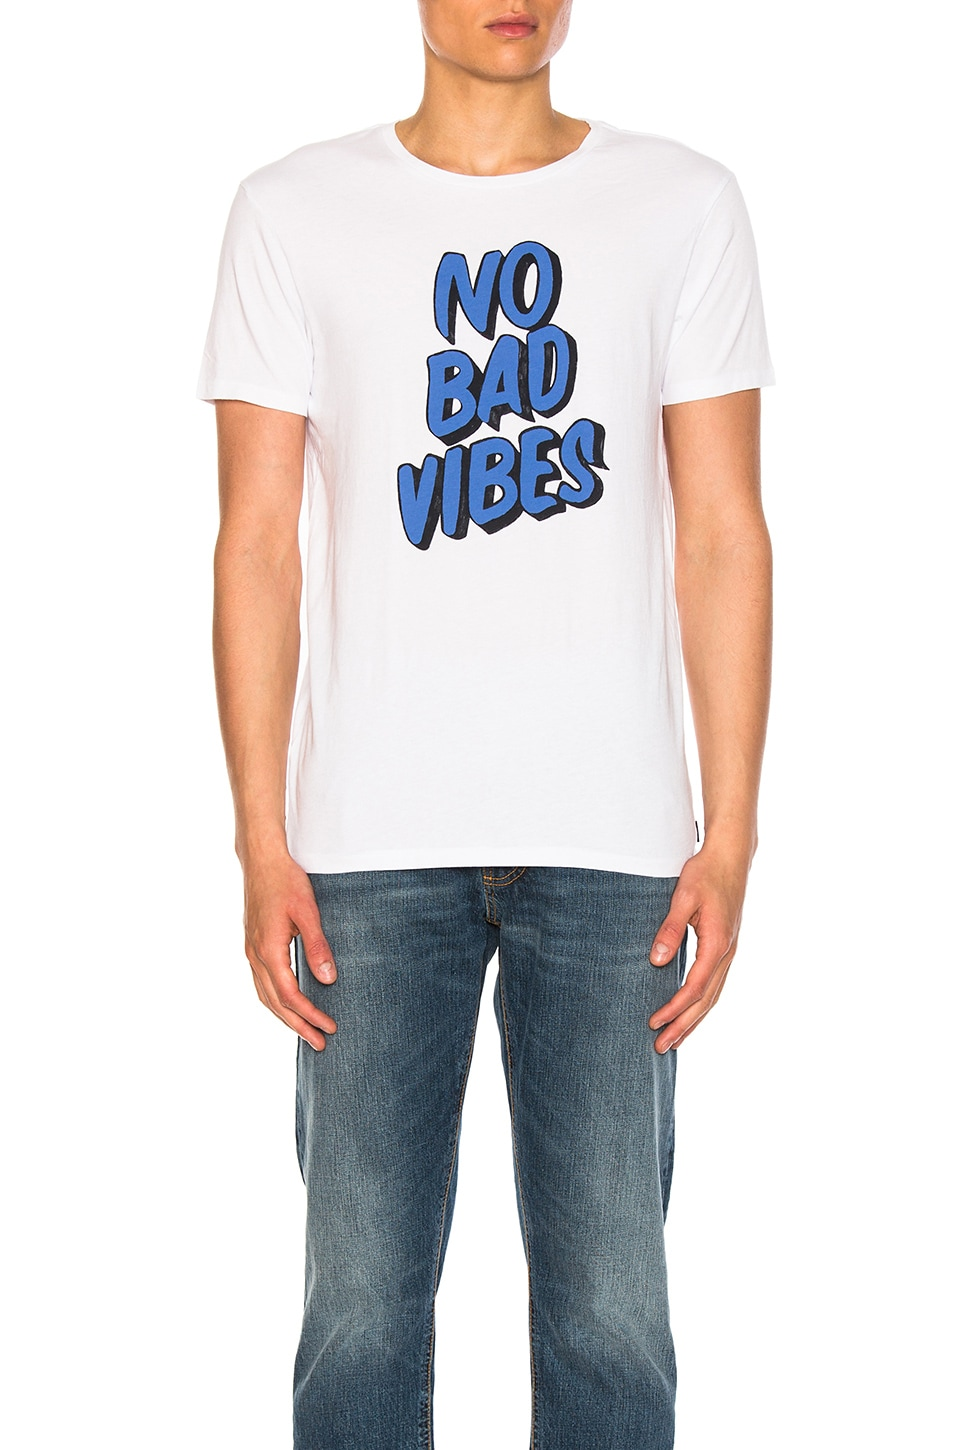 No Bad Vibes Tee by Scotch & Soda